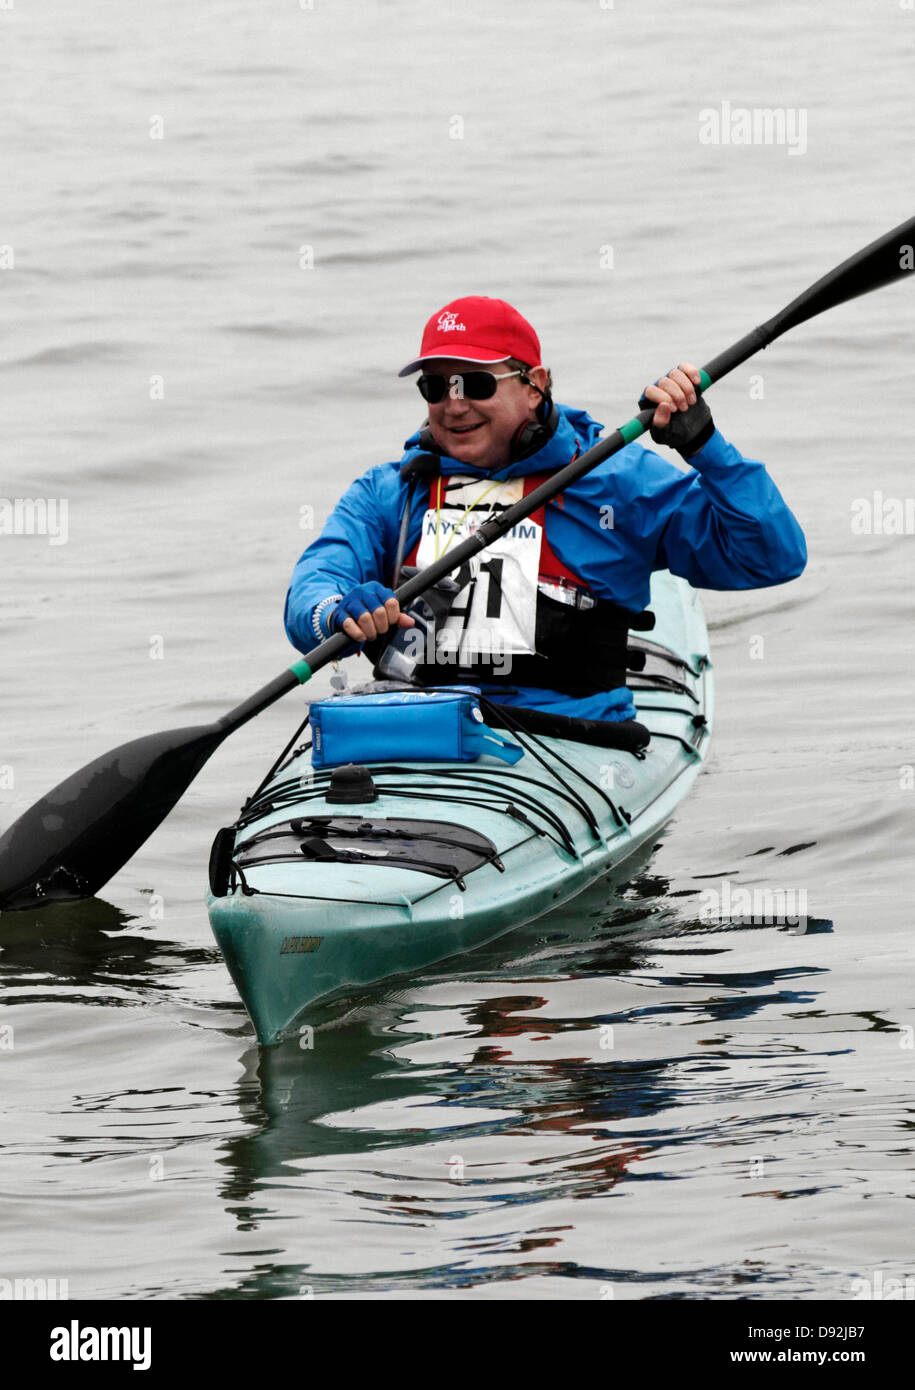 NEW YORK CITY, USA. 8 June, 2013. Australian mining magnate Andrew 'twiggy' Forrest in his kayak before - Stock Image